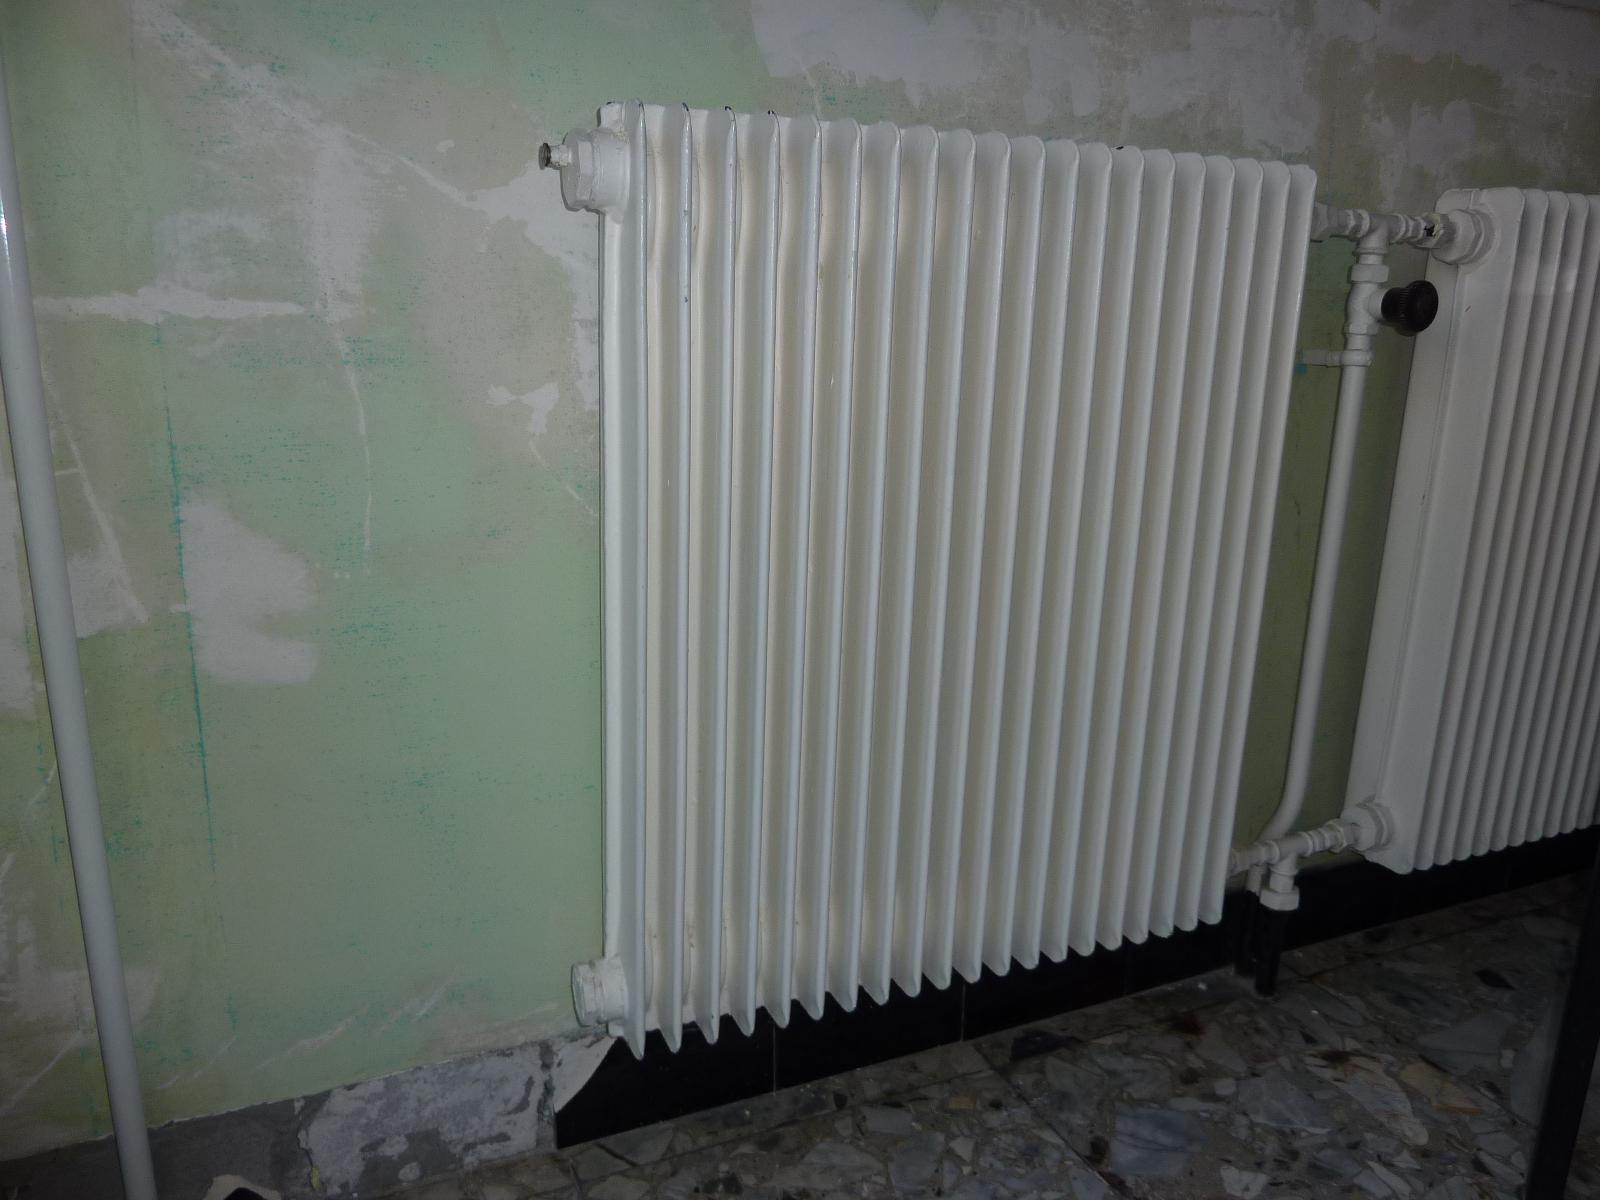 D montage radiateur chauffage central for Radiateur chauffage central tunisie